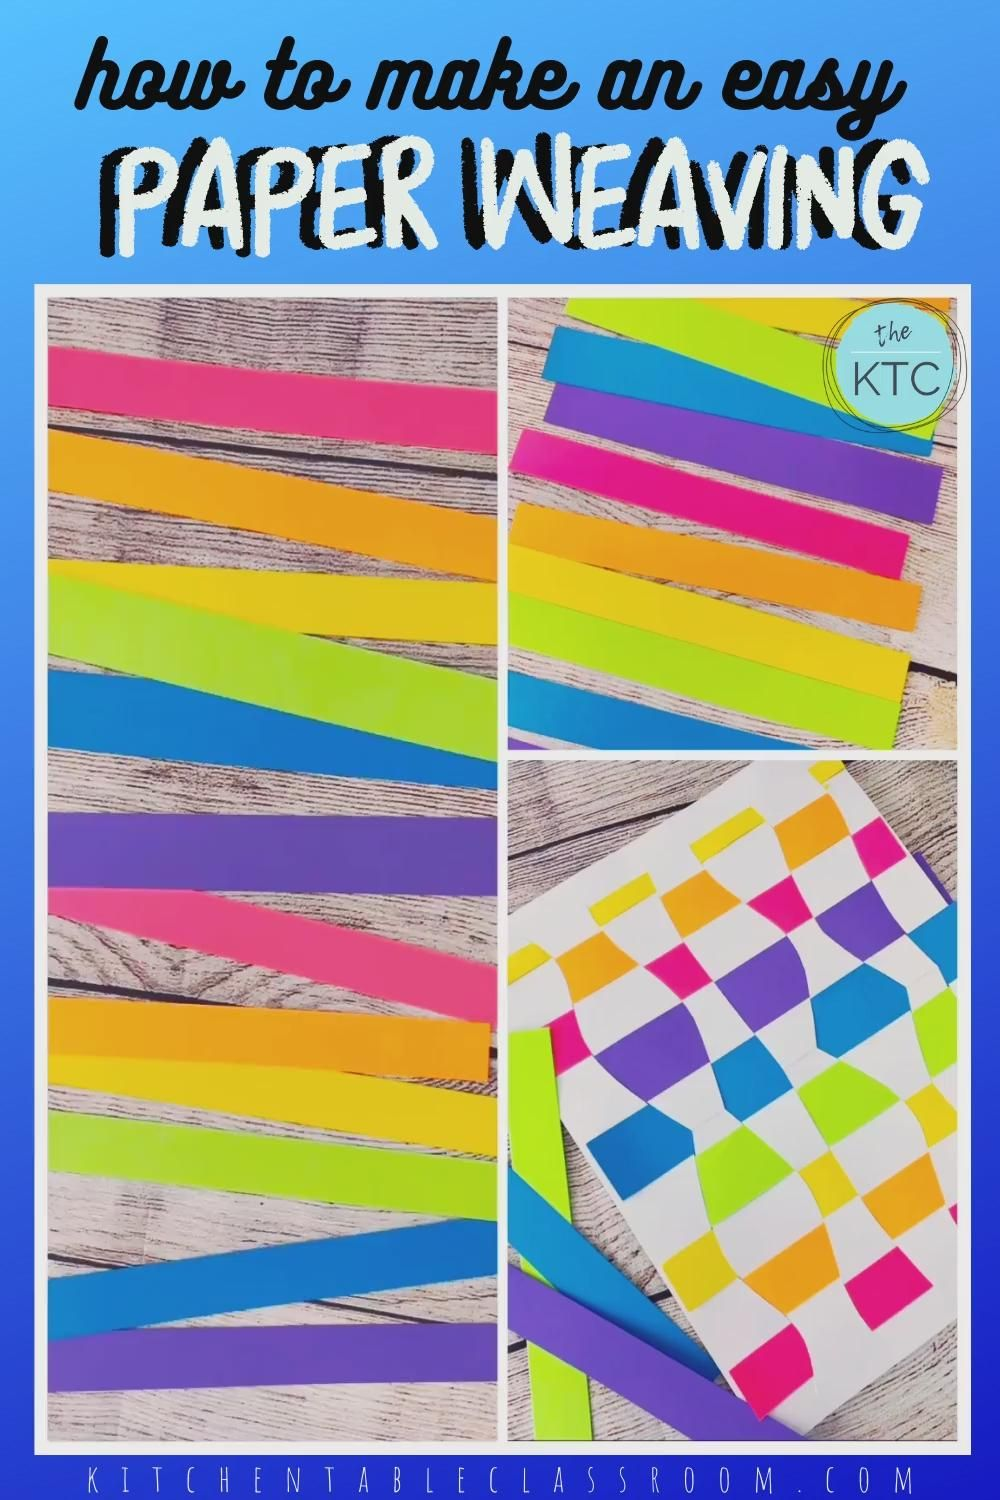 How to teach paper weaving skills